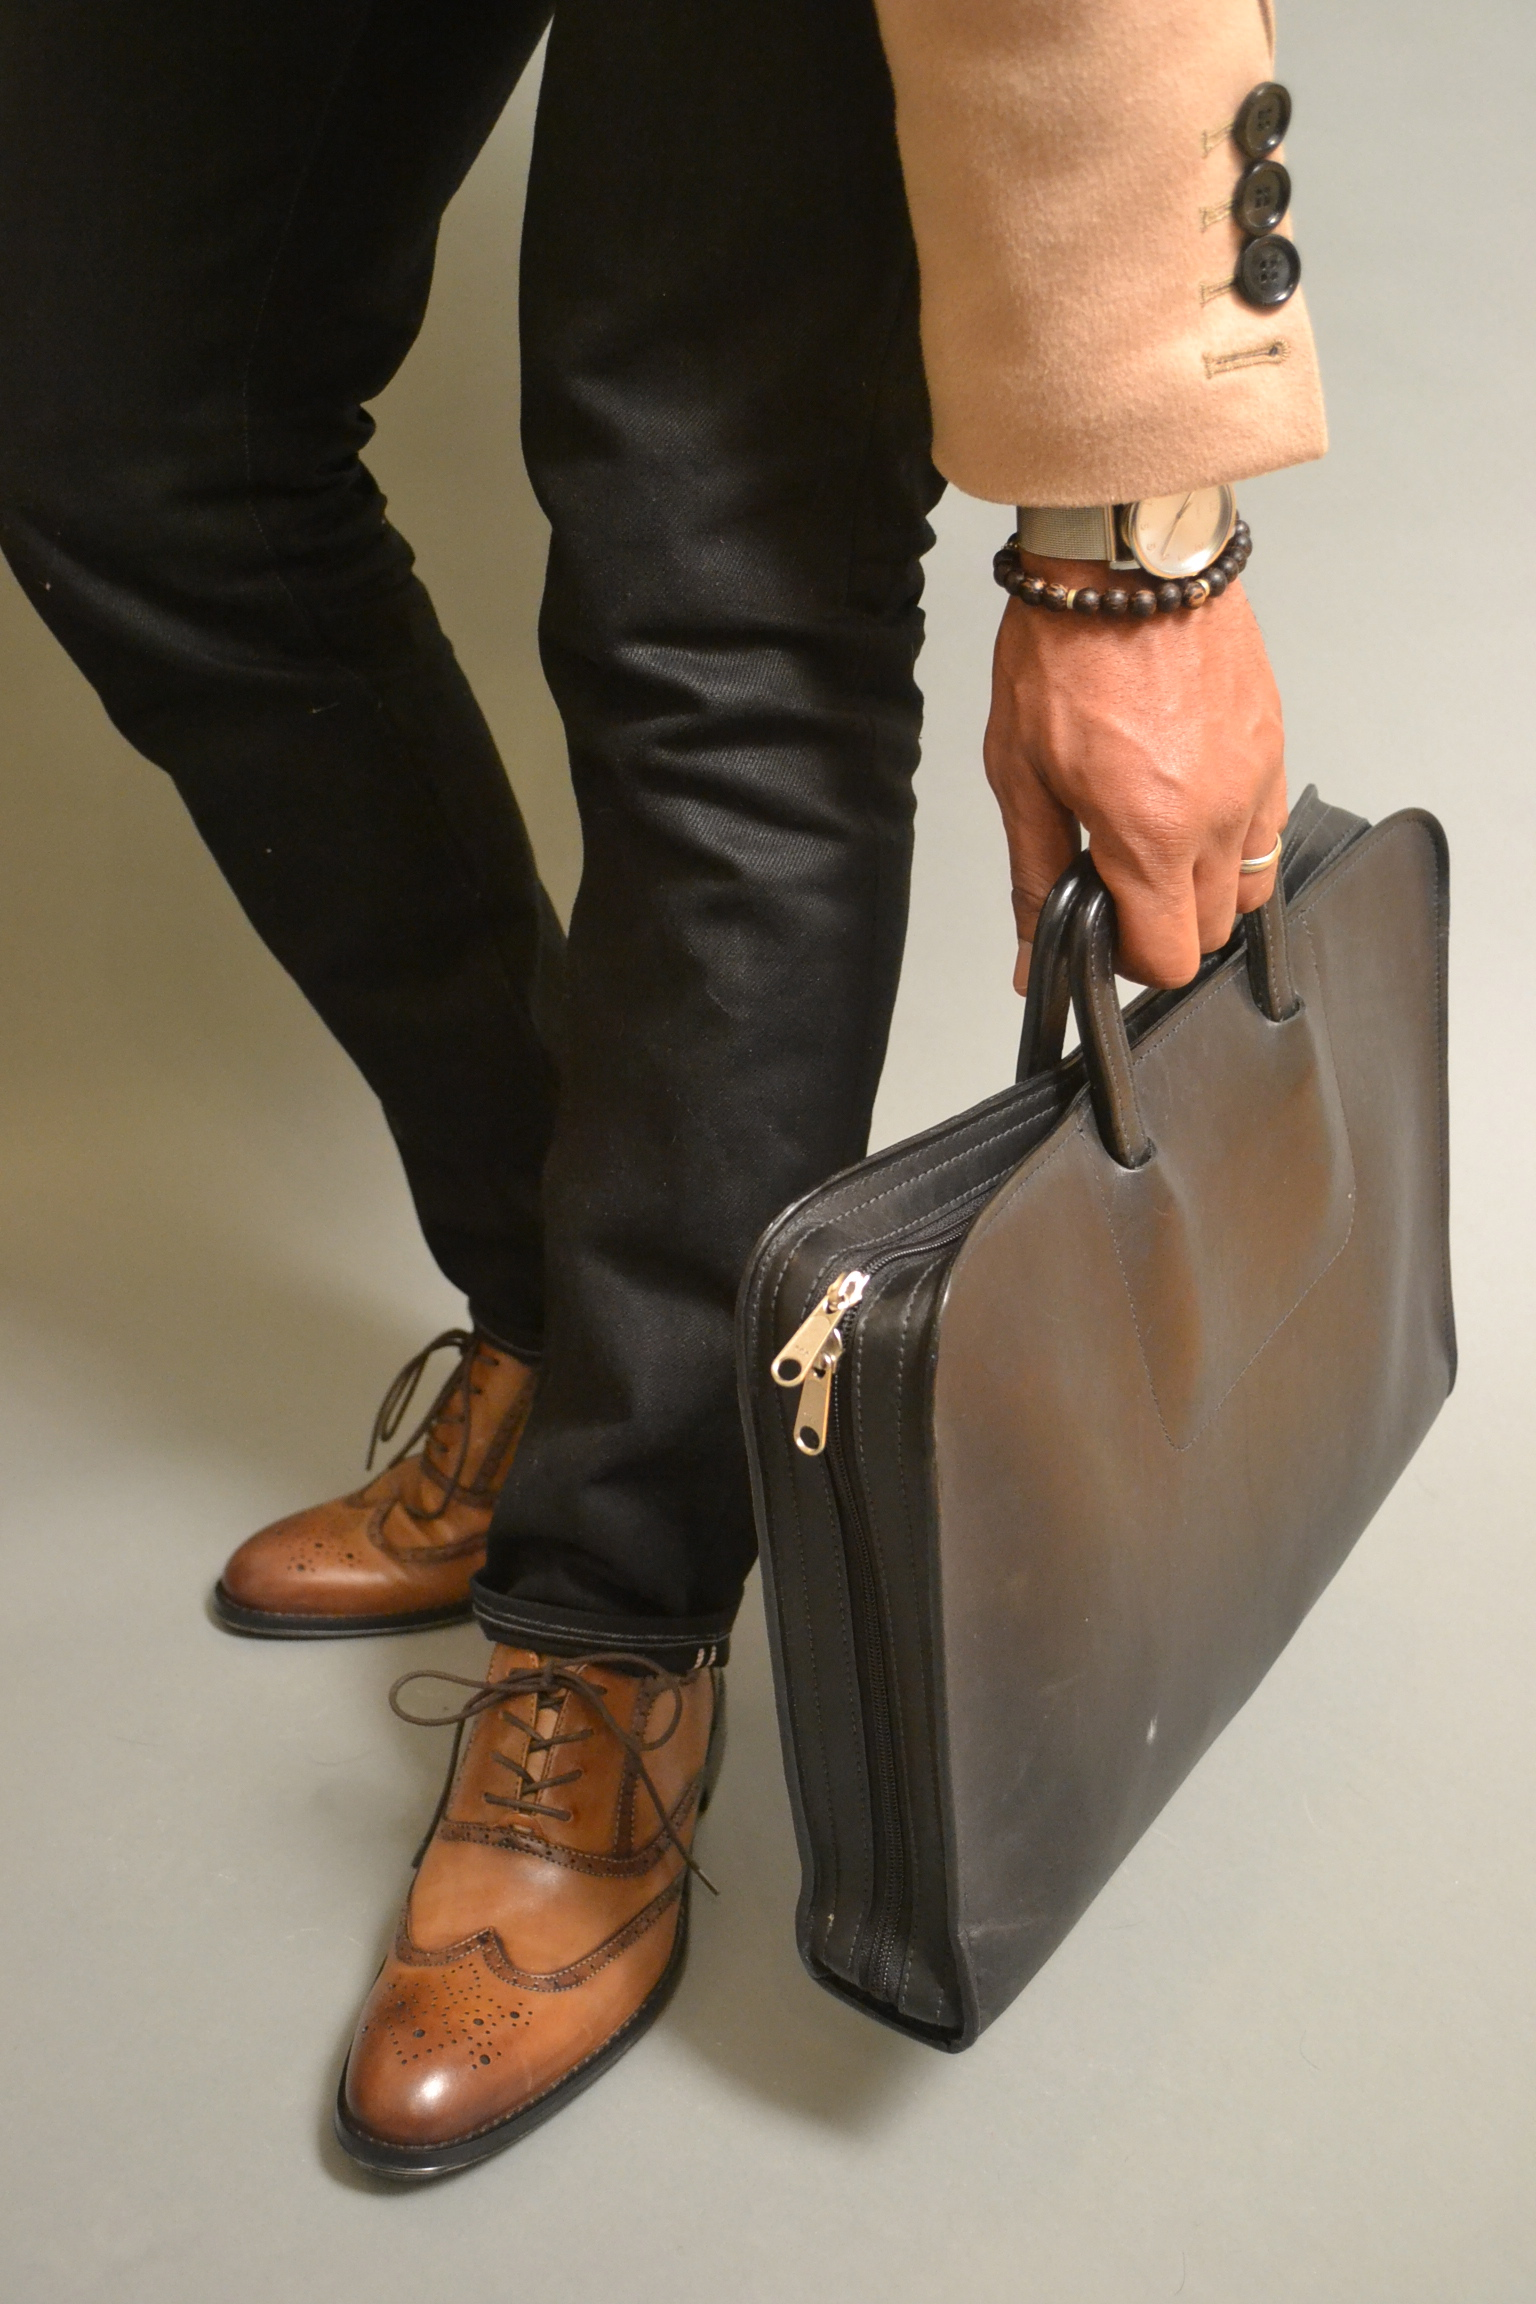 Sabir in Aston Grey Wingtips, 3x1 black jeans, tobox bracelet & korchmar briefcase